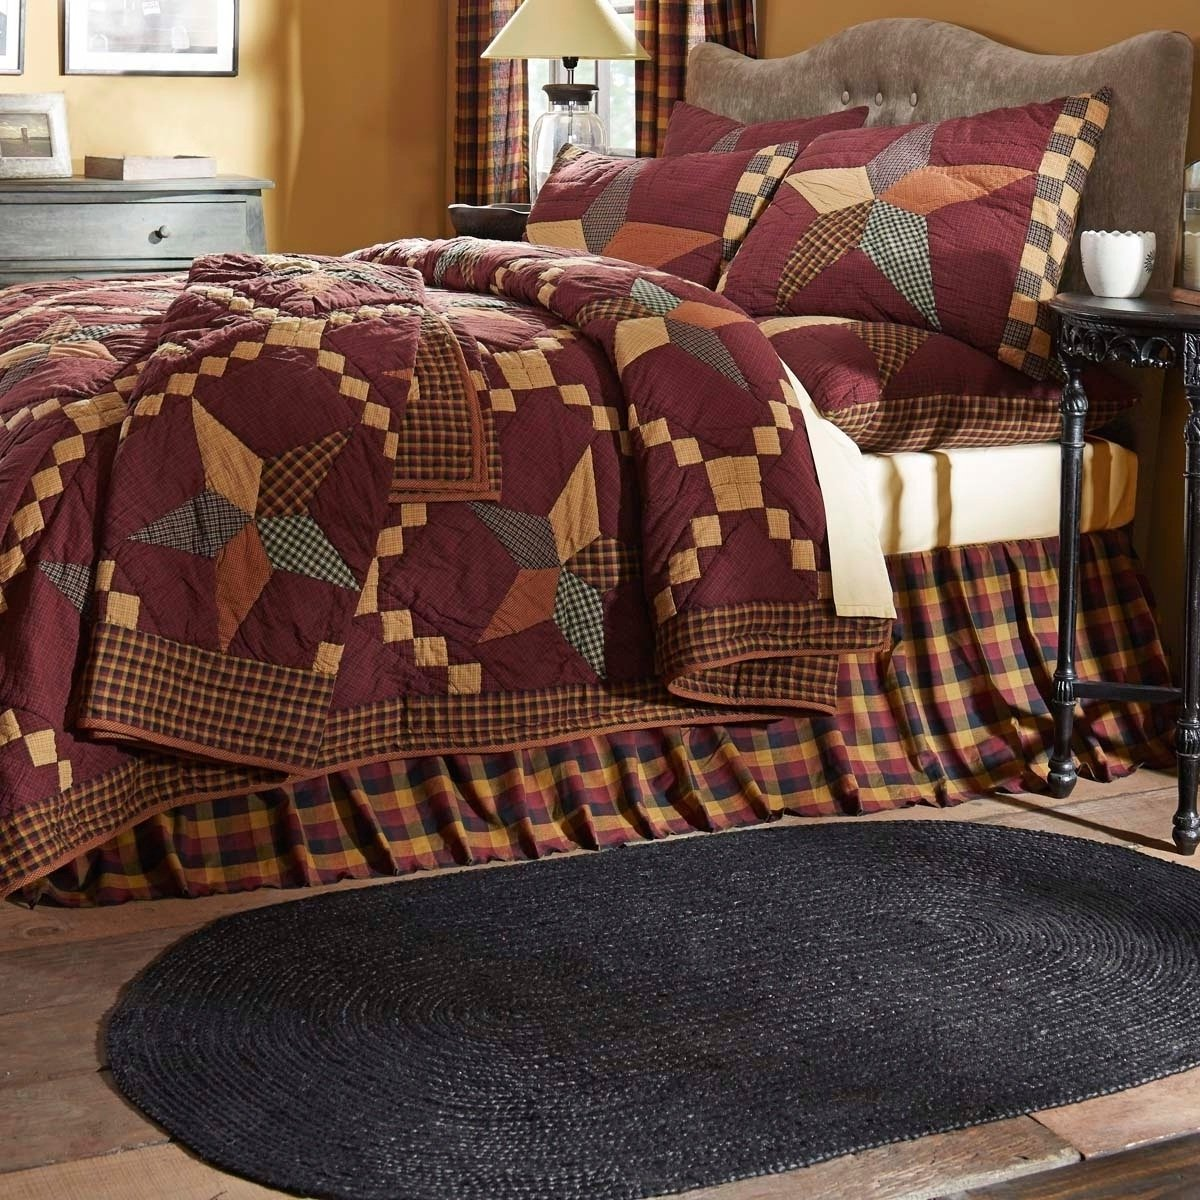 1 Piece Queen, Eye-Catching Western Classic Patchwork Pattern Quilt, Contemporary Rustic, Abstract Check Design, Unique Border Plaid Themed, Gorgeous Reversible Bedding, Black, Burgundy, Yellow Color